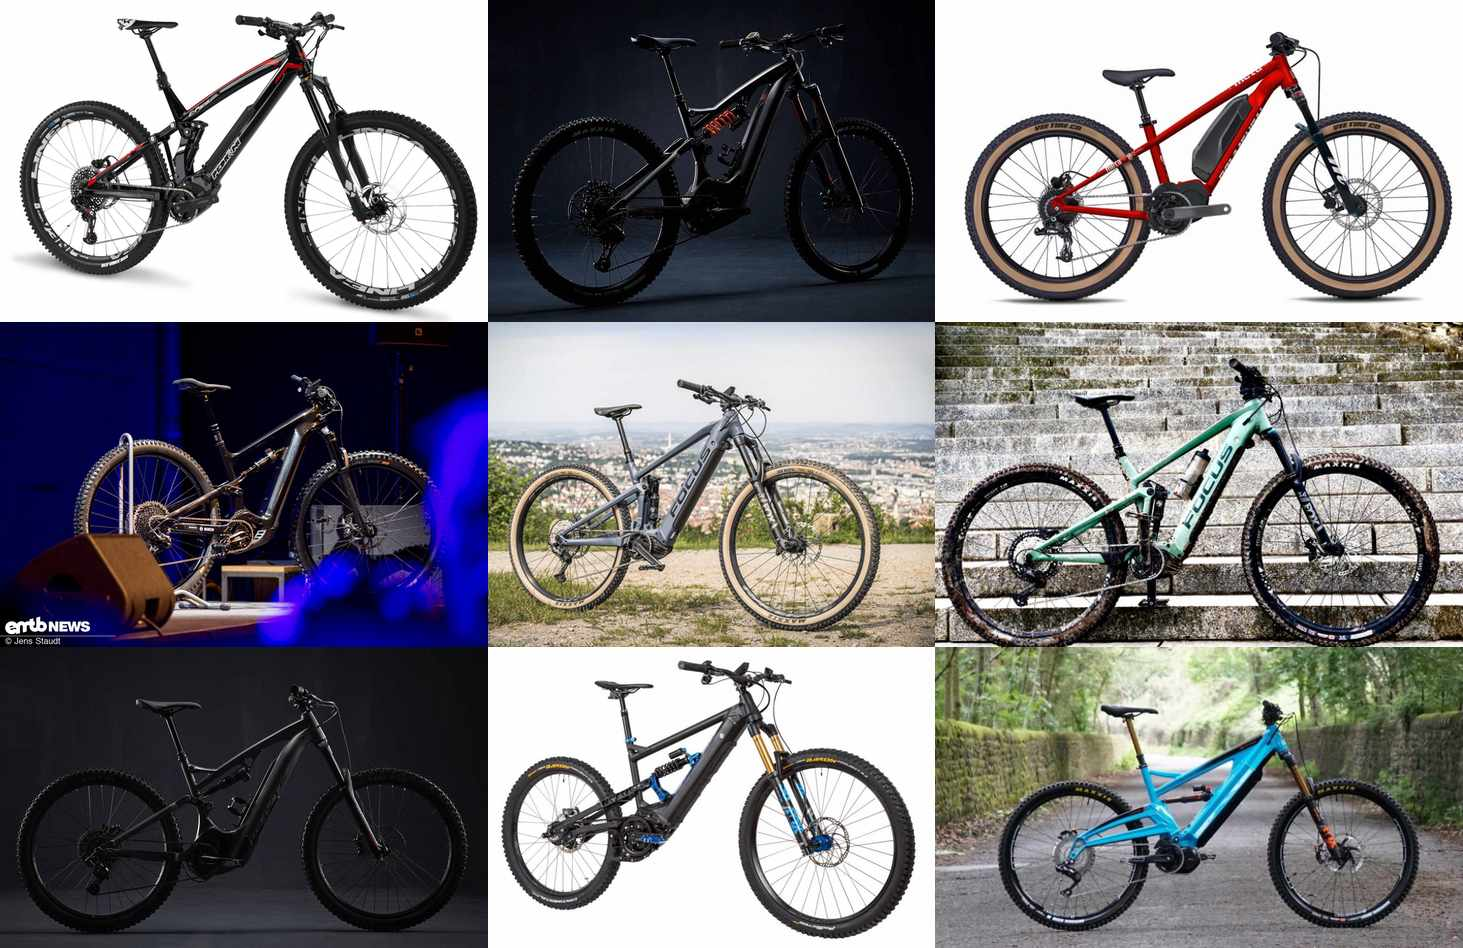 9 new e-Bikes announced this week, when will we see number 10?